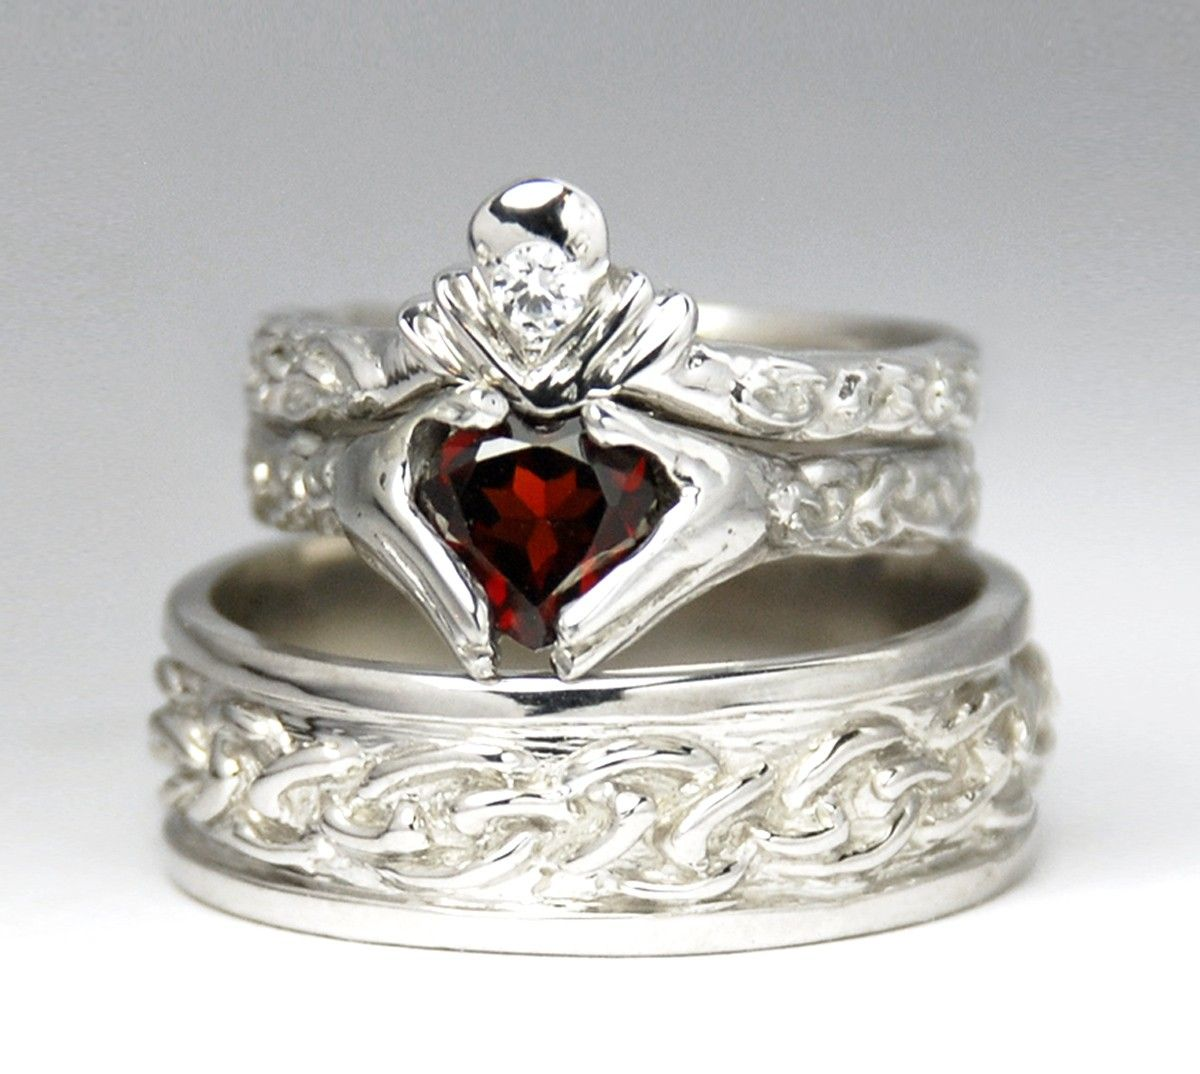 claddagh wedding set new white gold diamond garnet engagement ring mens celtic band rickson - Claddagh Wedding Ring Sets